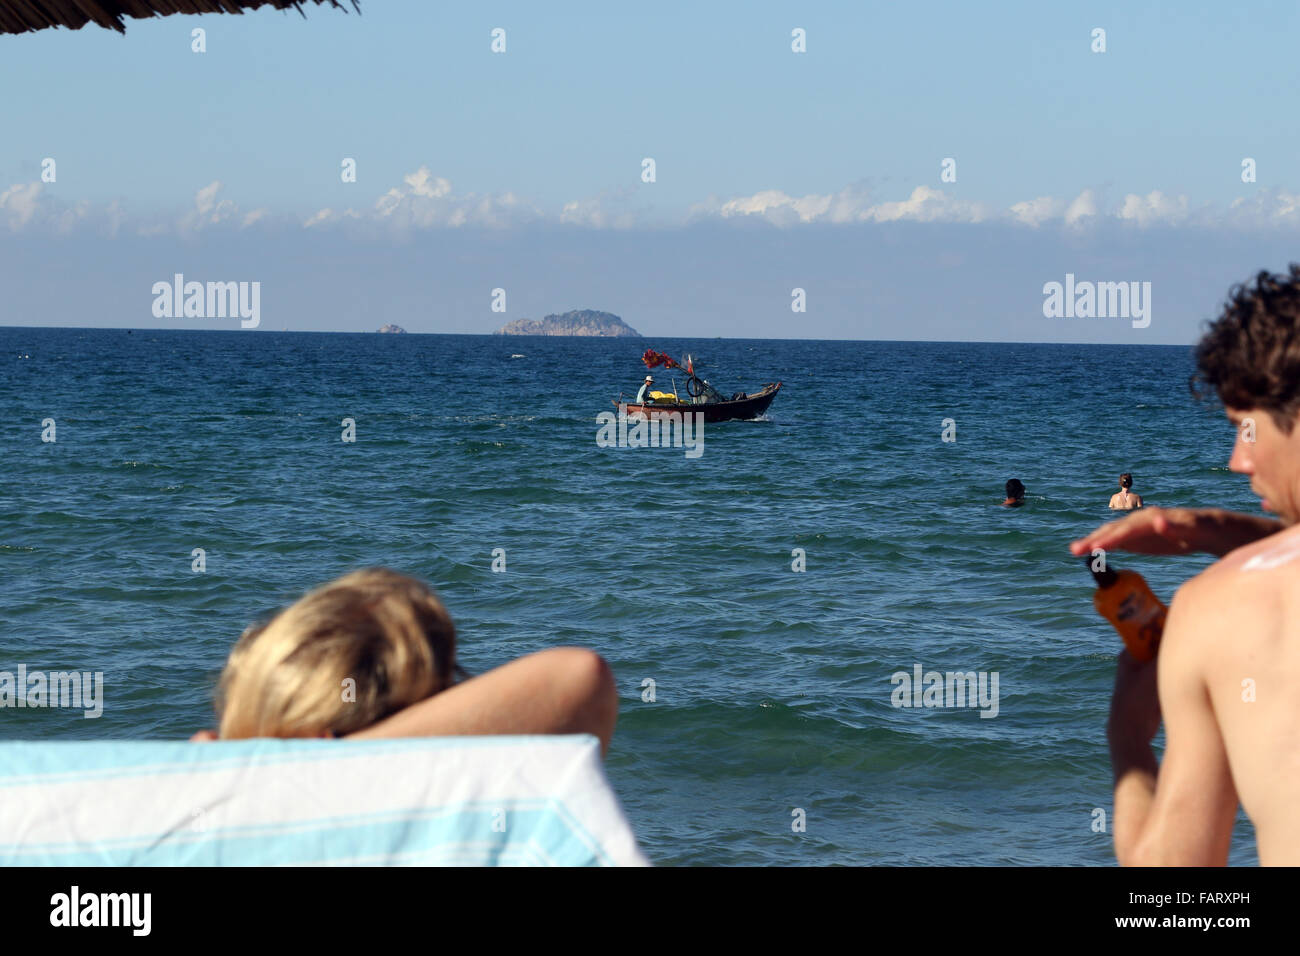 South China Sea traditional boat floating beach - Stock Image